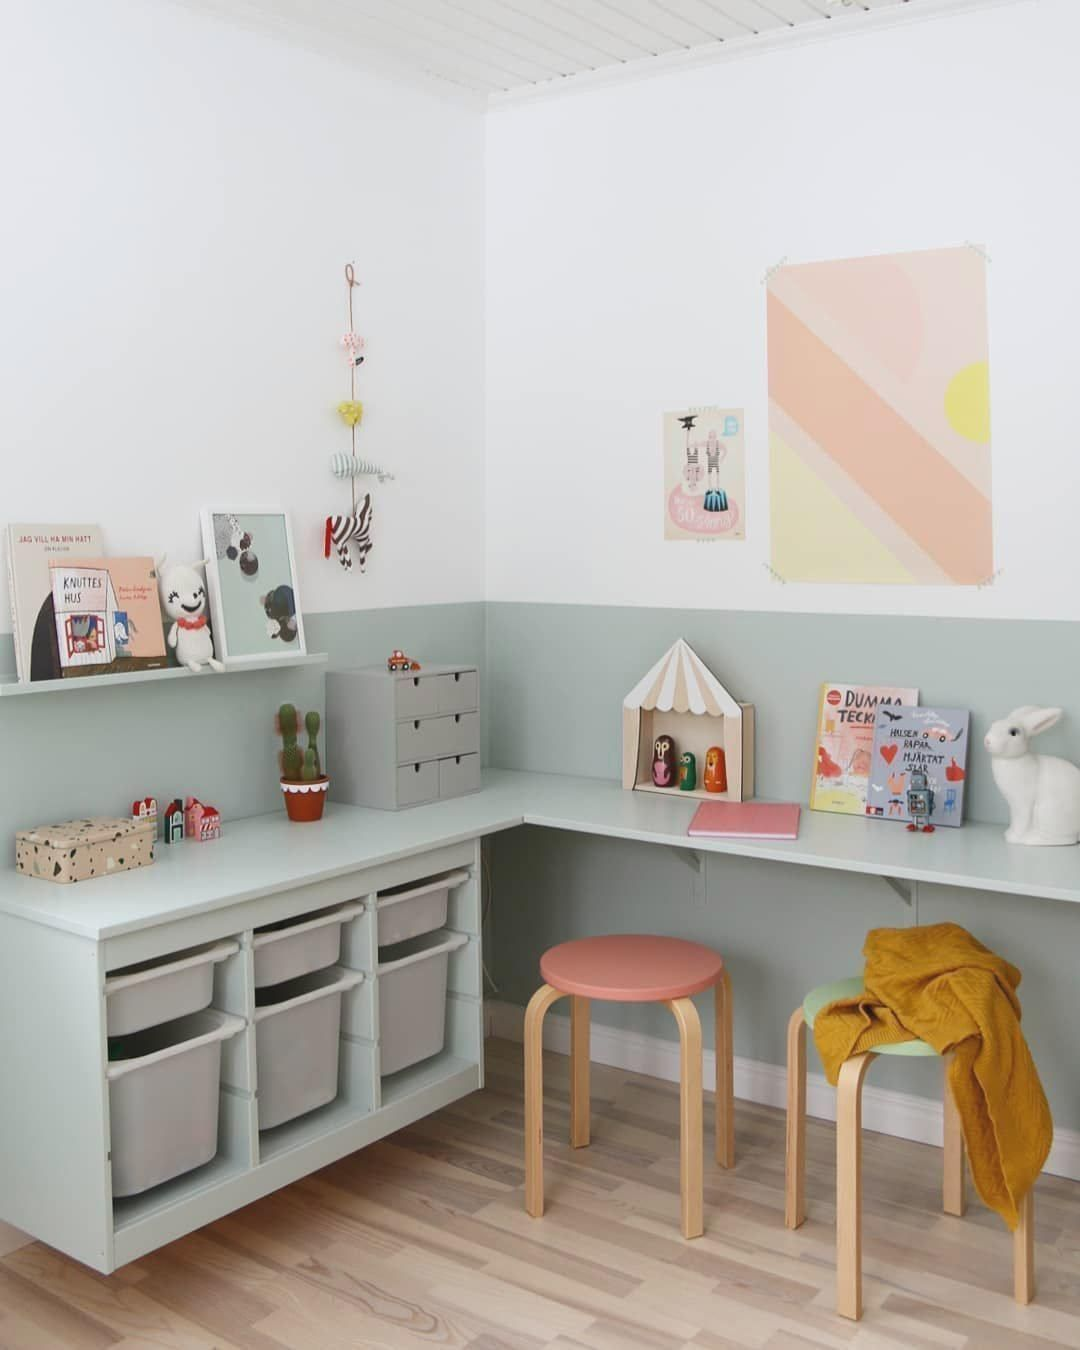 ikea-hacks-for-kids-bedrooms-ikea-play-kitchen-upcycle-nursery-hacks-ikea-nursery-on-a-budget-ikea-diy-projects-play-kitchen-diy